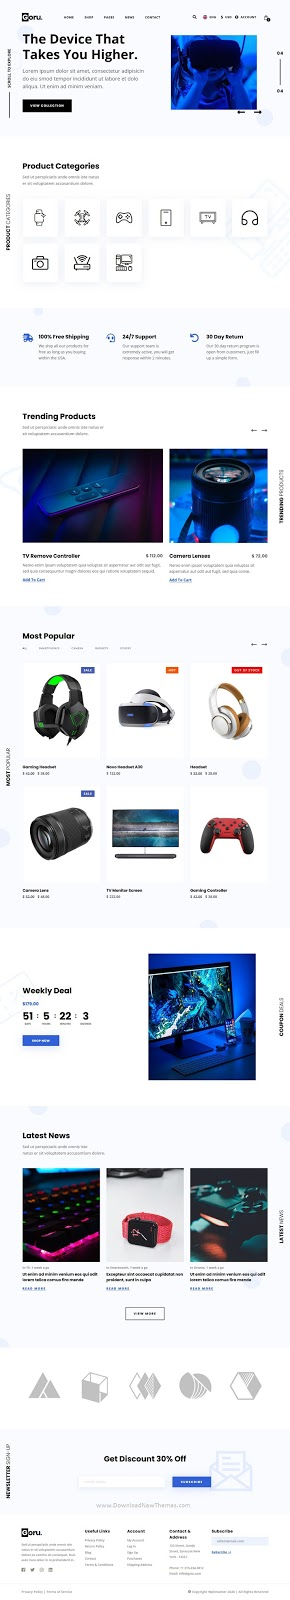 Best Electronics eCommerce Website Template